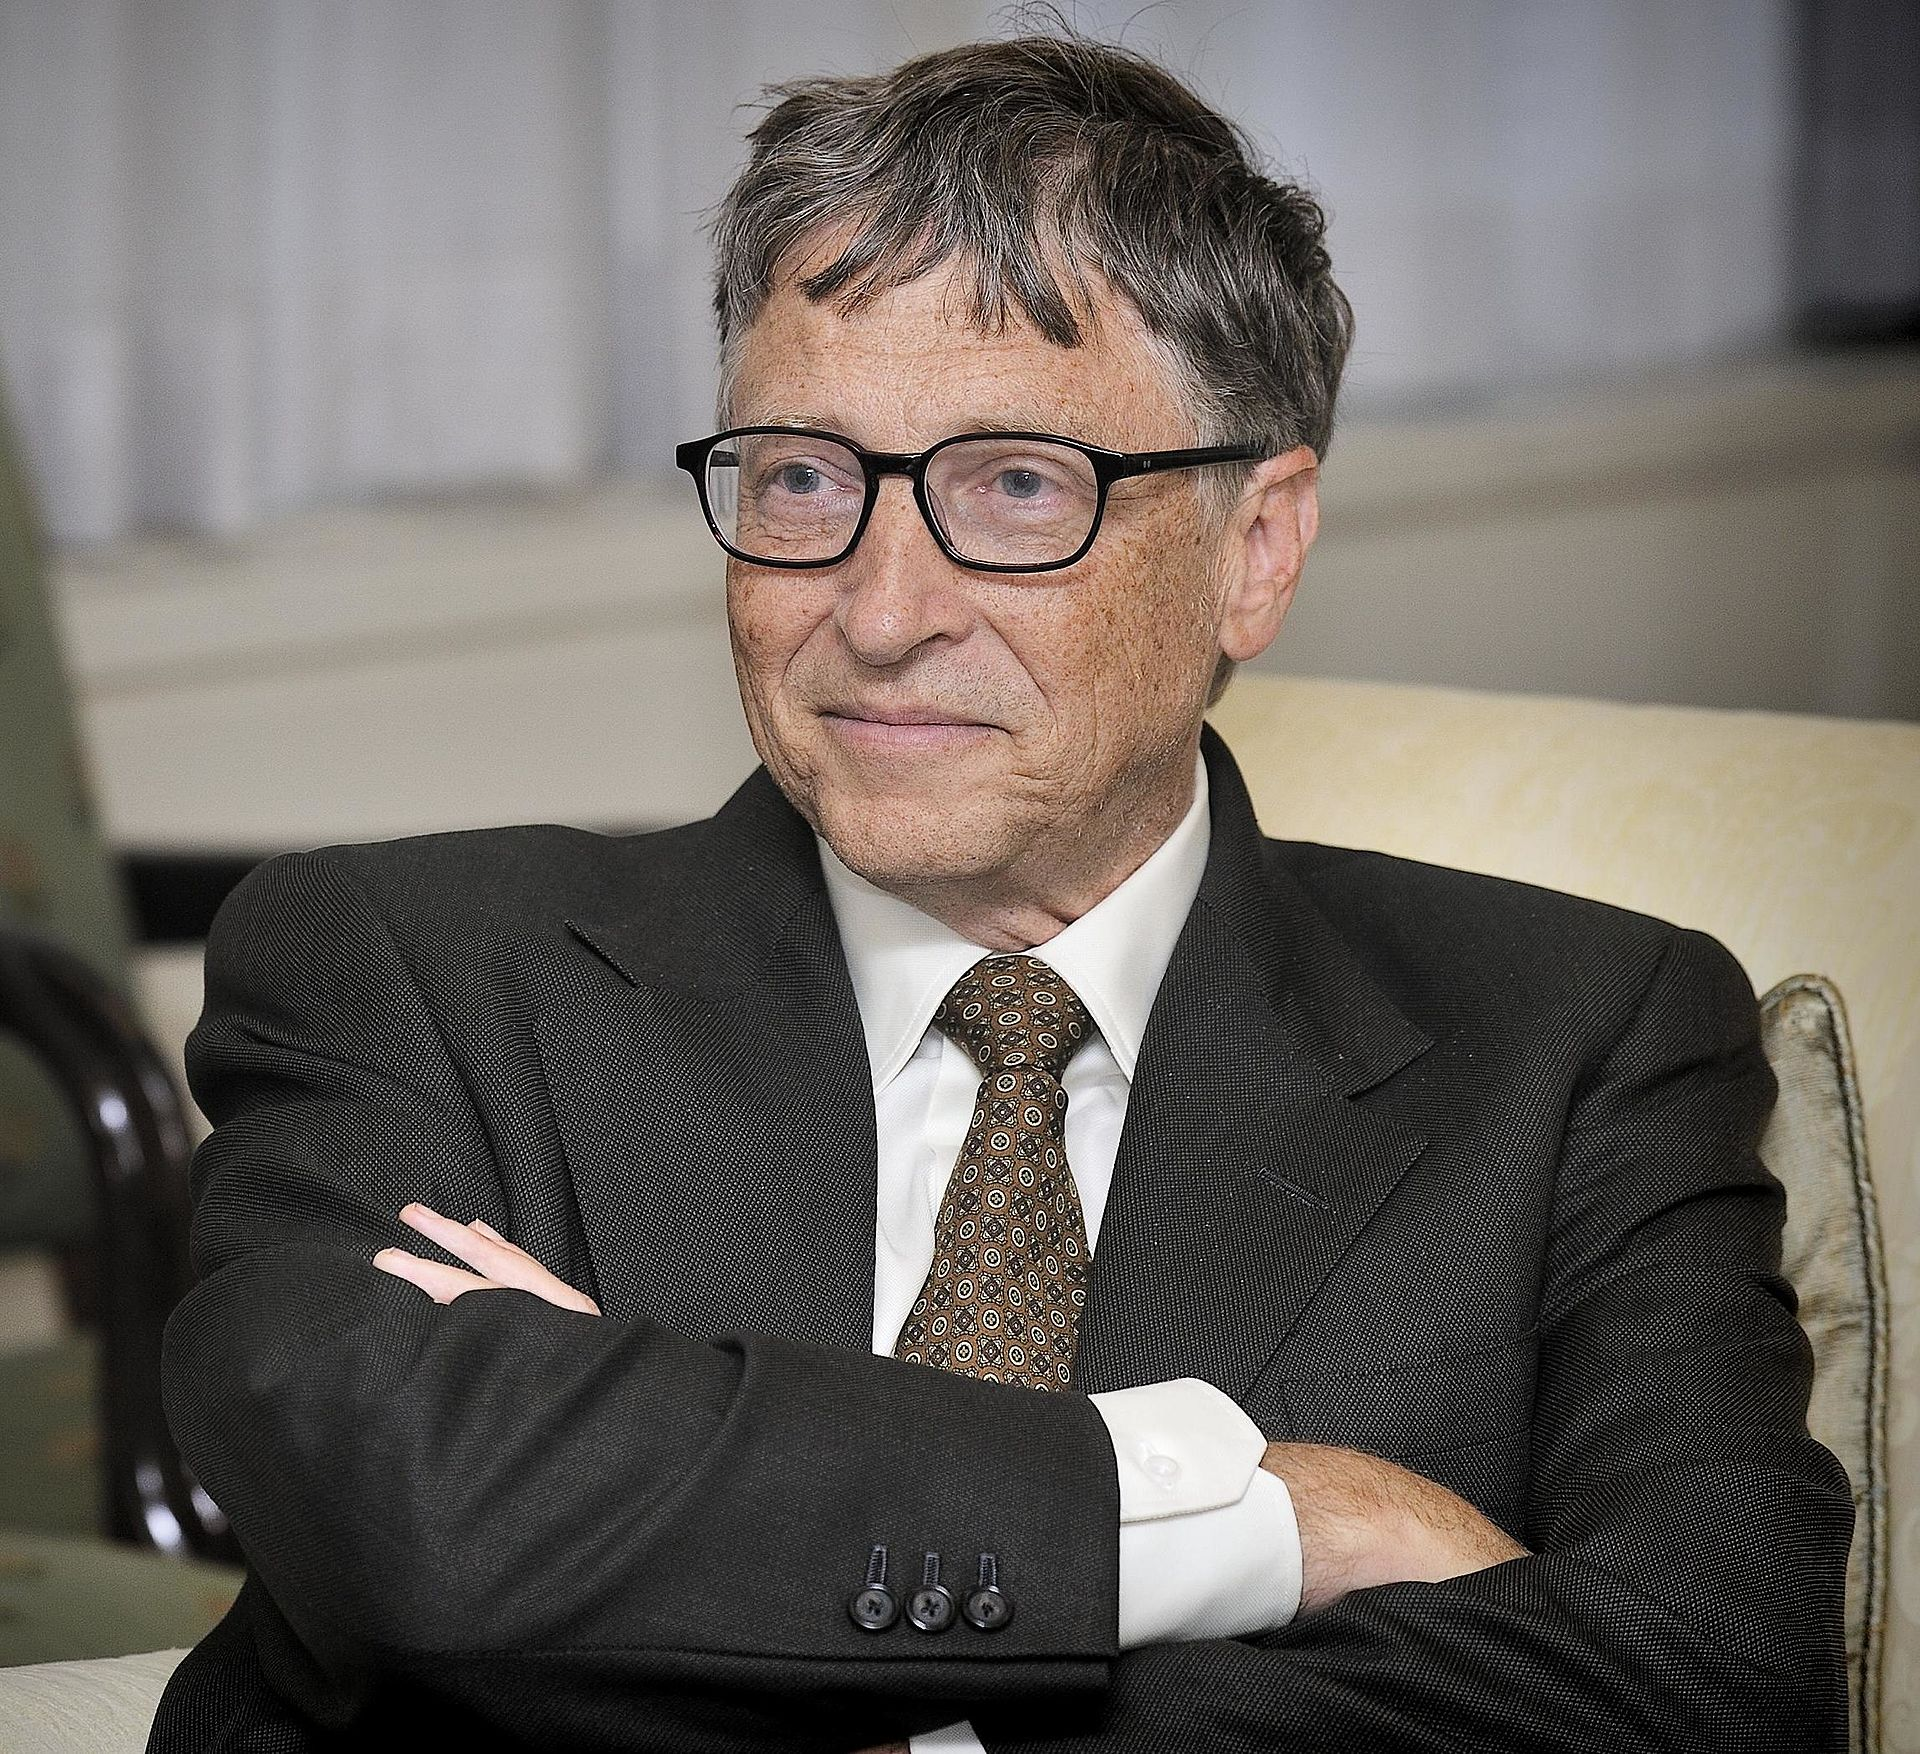 Bill Gates leaves Microsoft board of directors